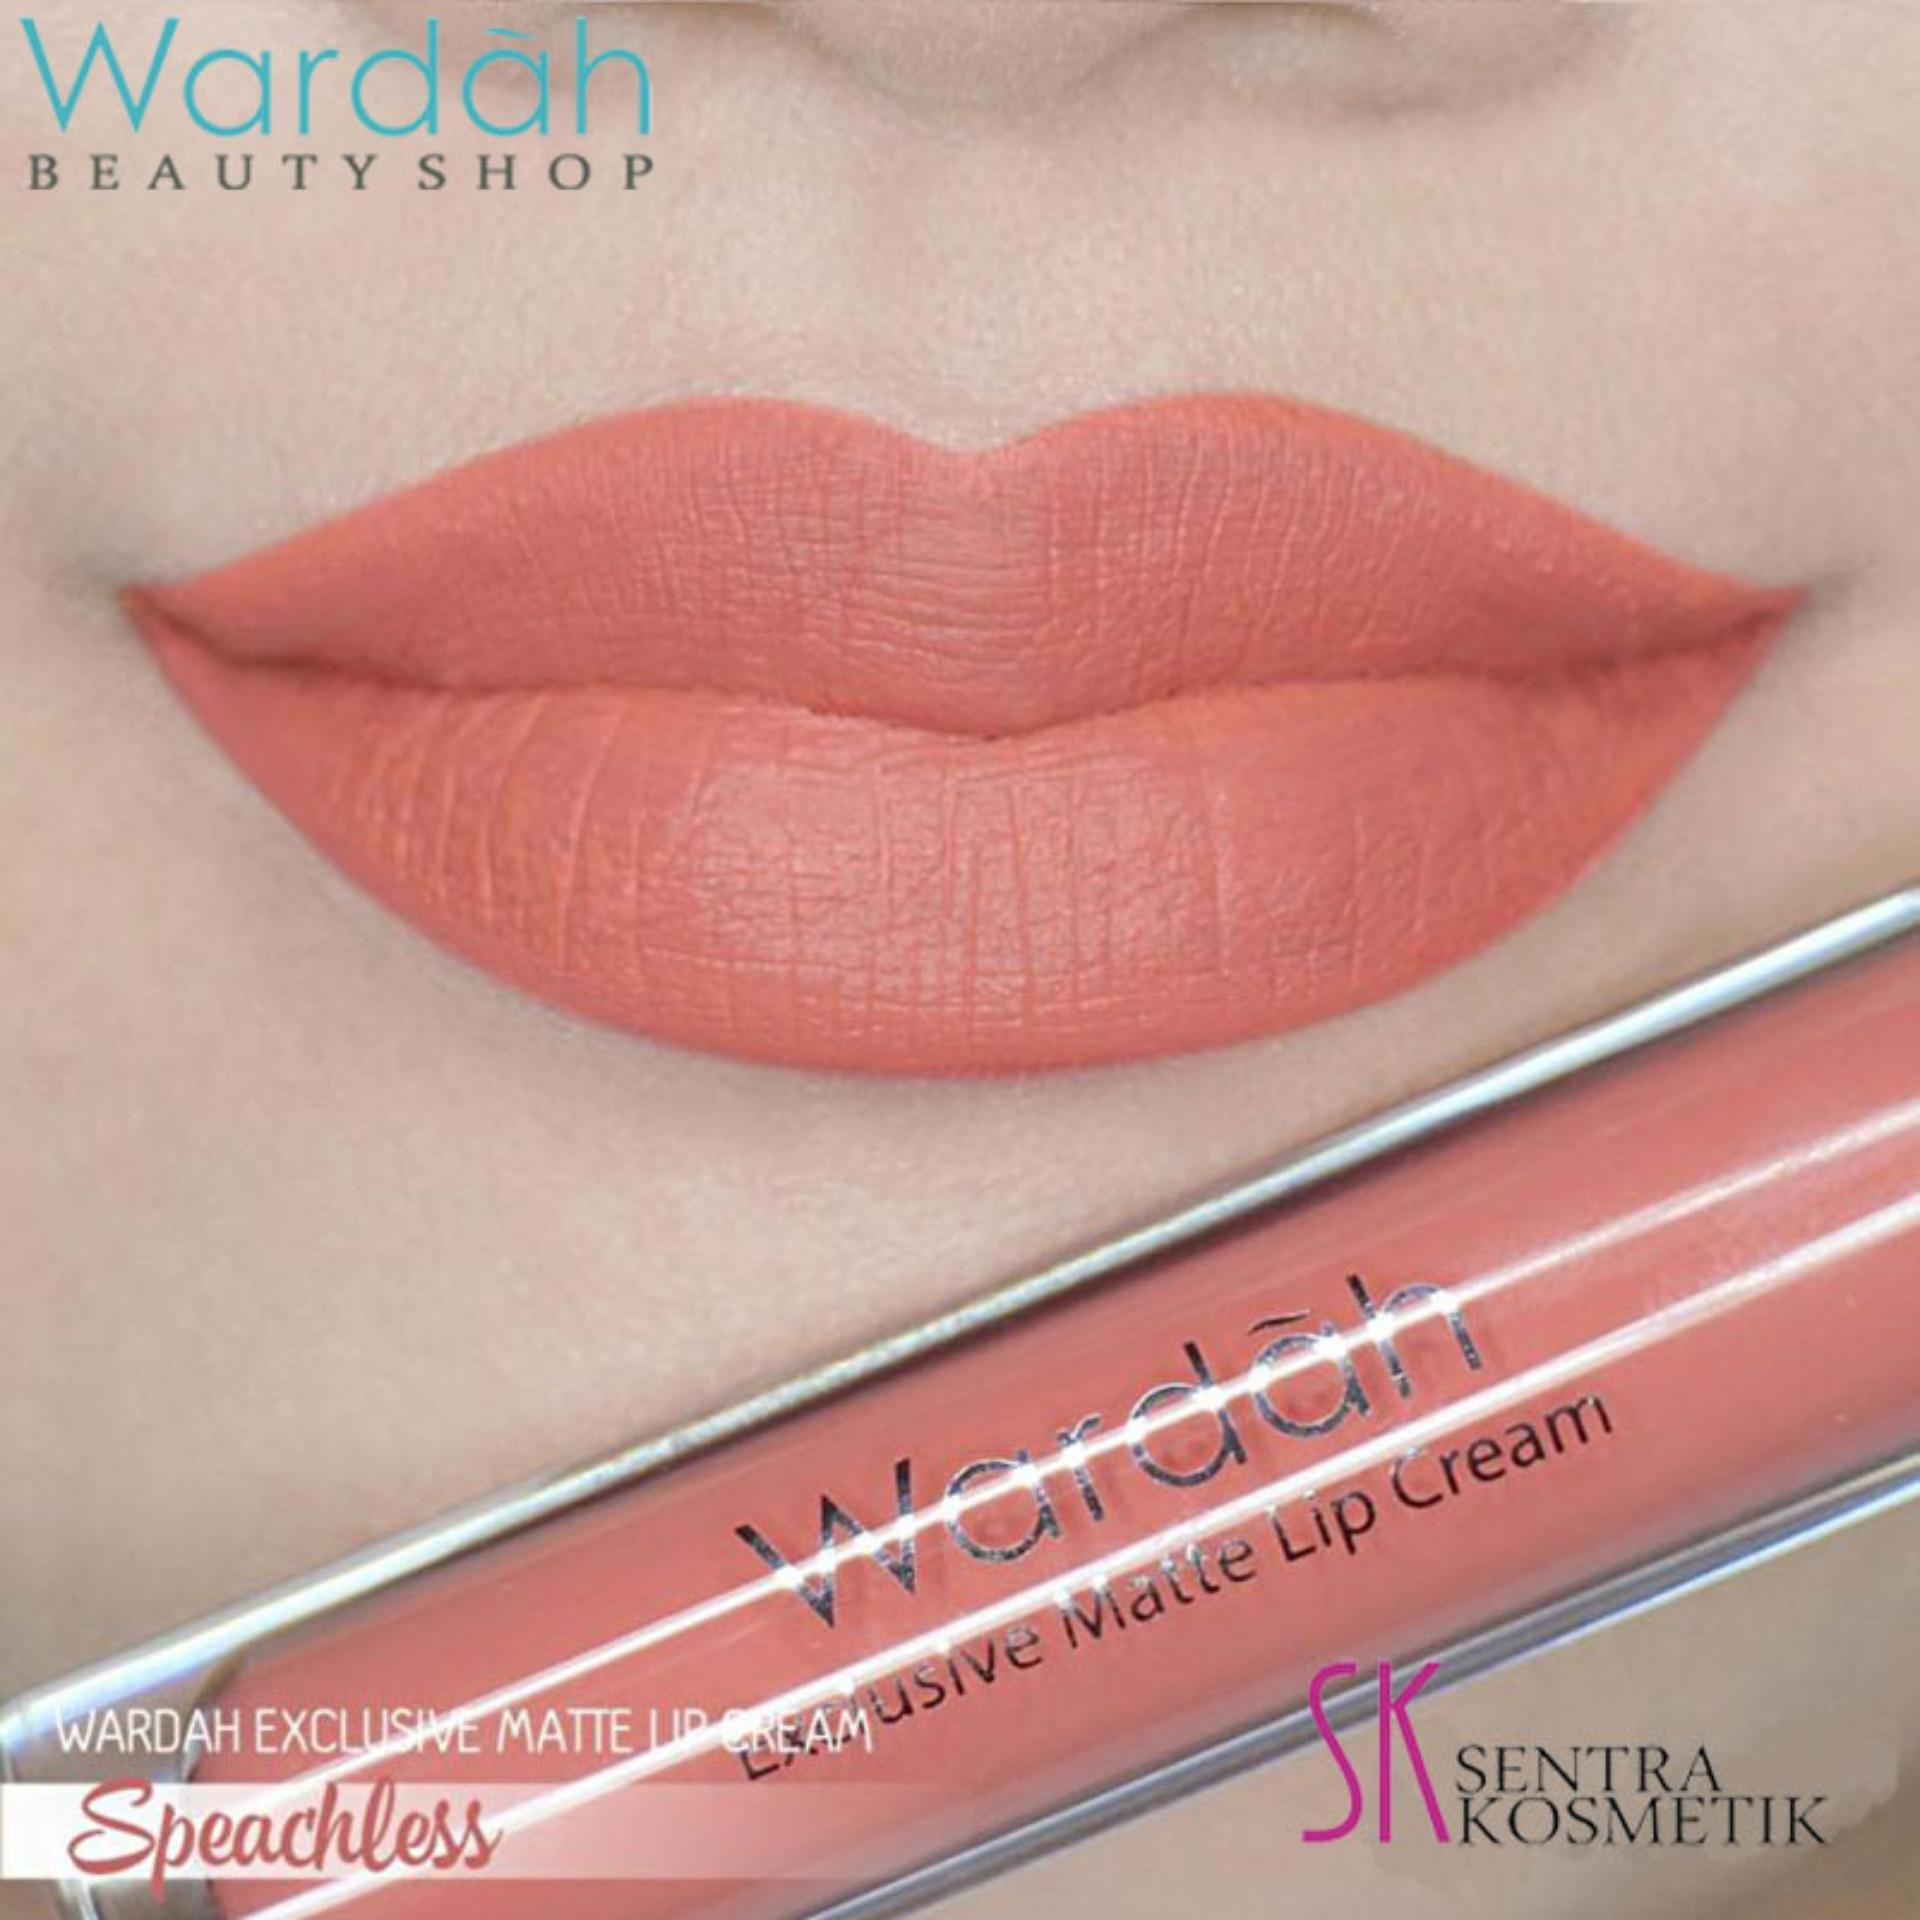 Wardah Exclusive MATTE LIP CREAM No 05 - SPEECHLESS